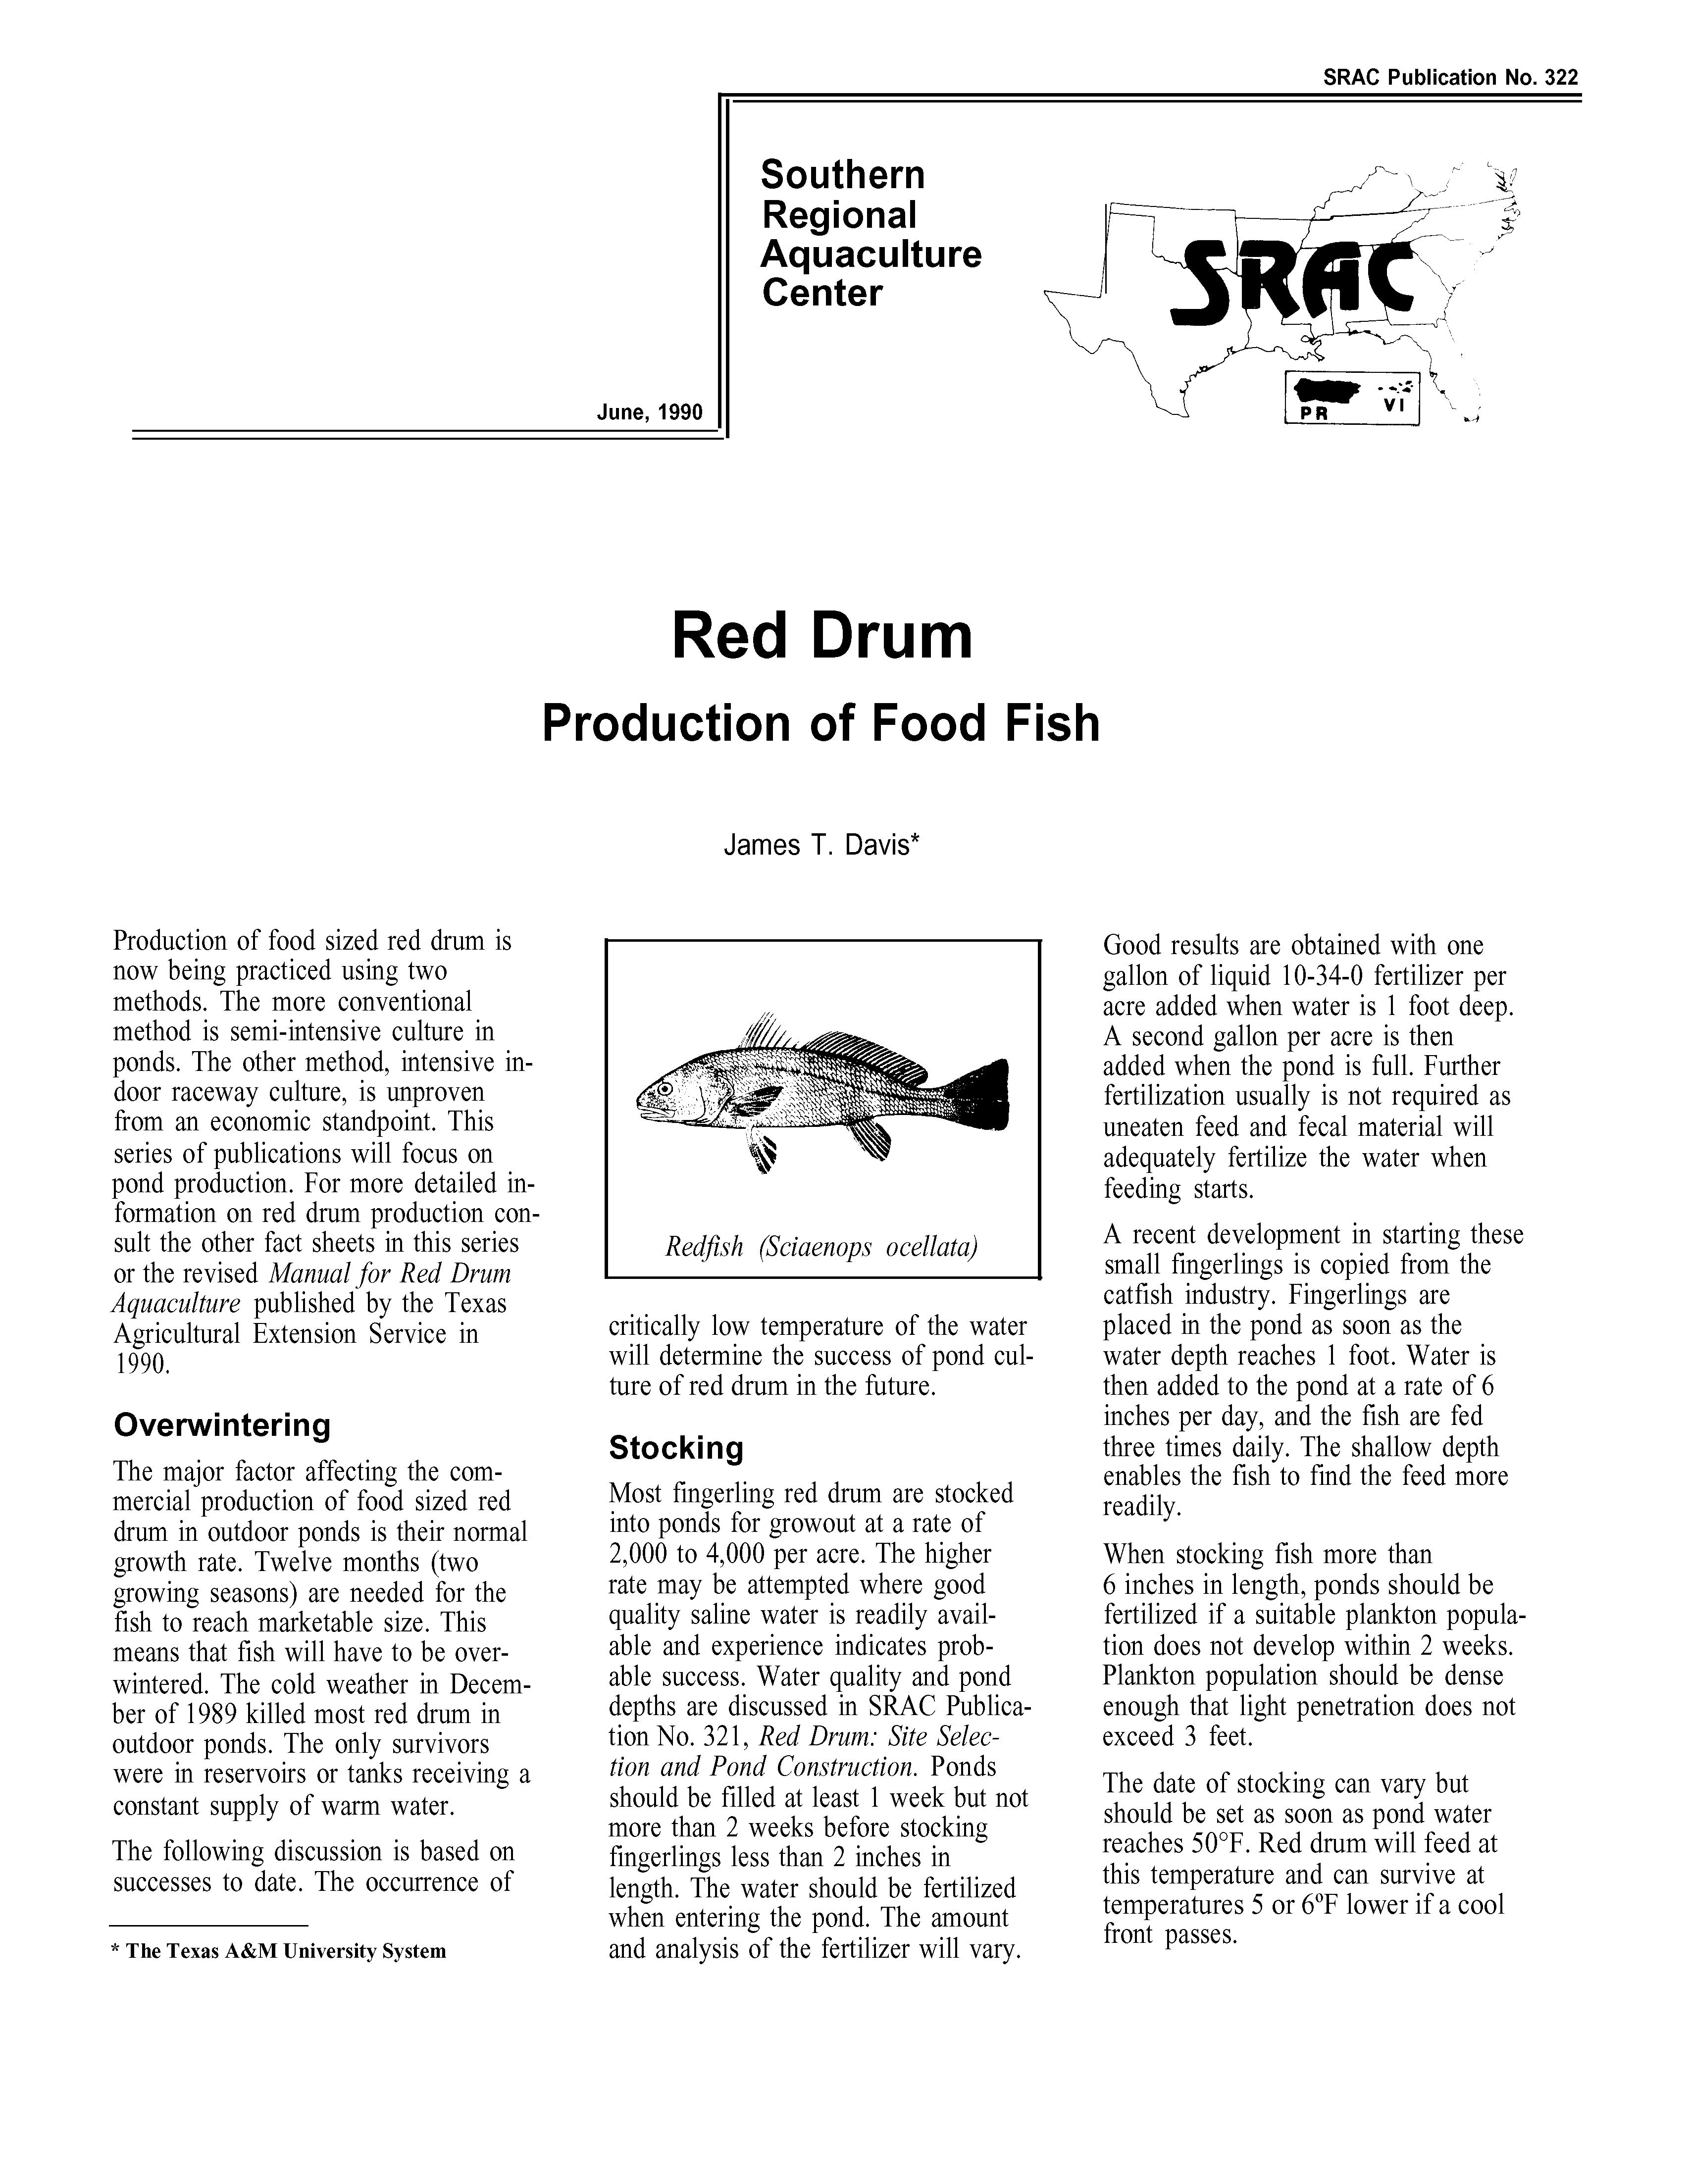 Red Drum: Production of Food Fish